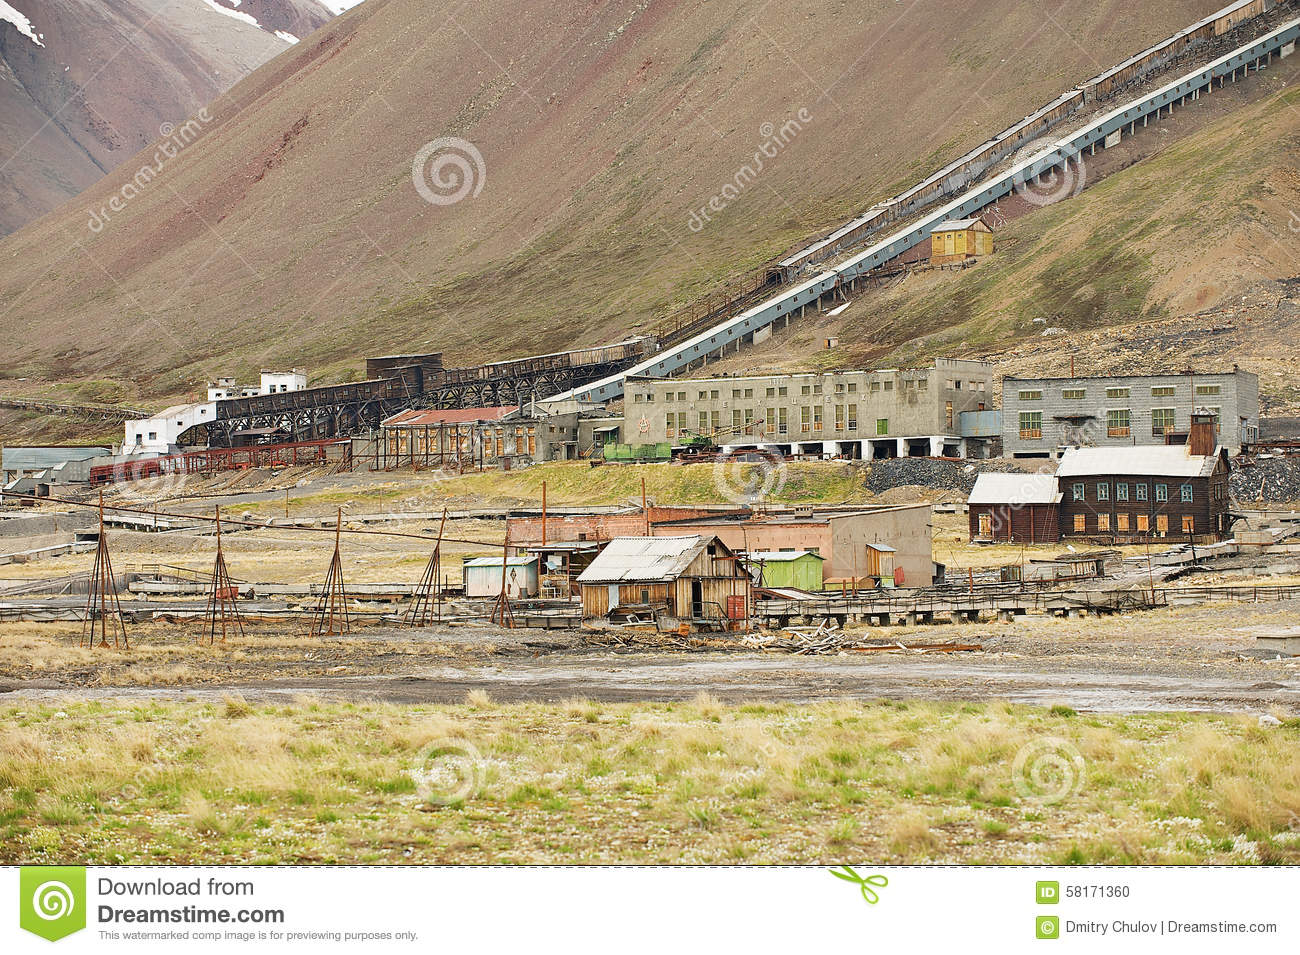 View to the ruined coal mine in the abandoned Russian arctic settlement Pyramiden, Norway.